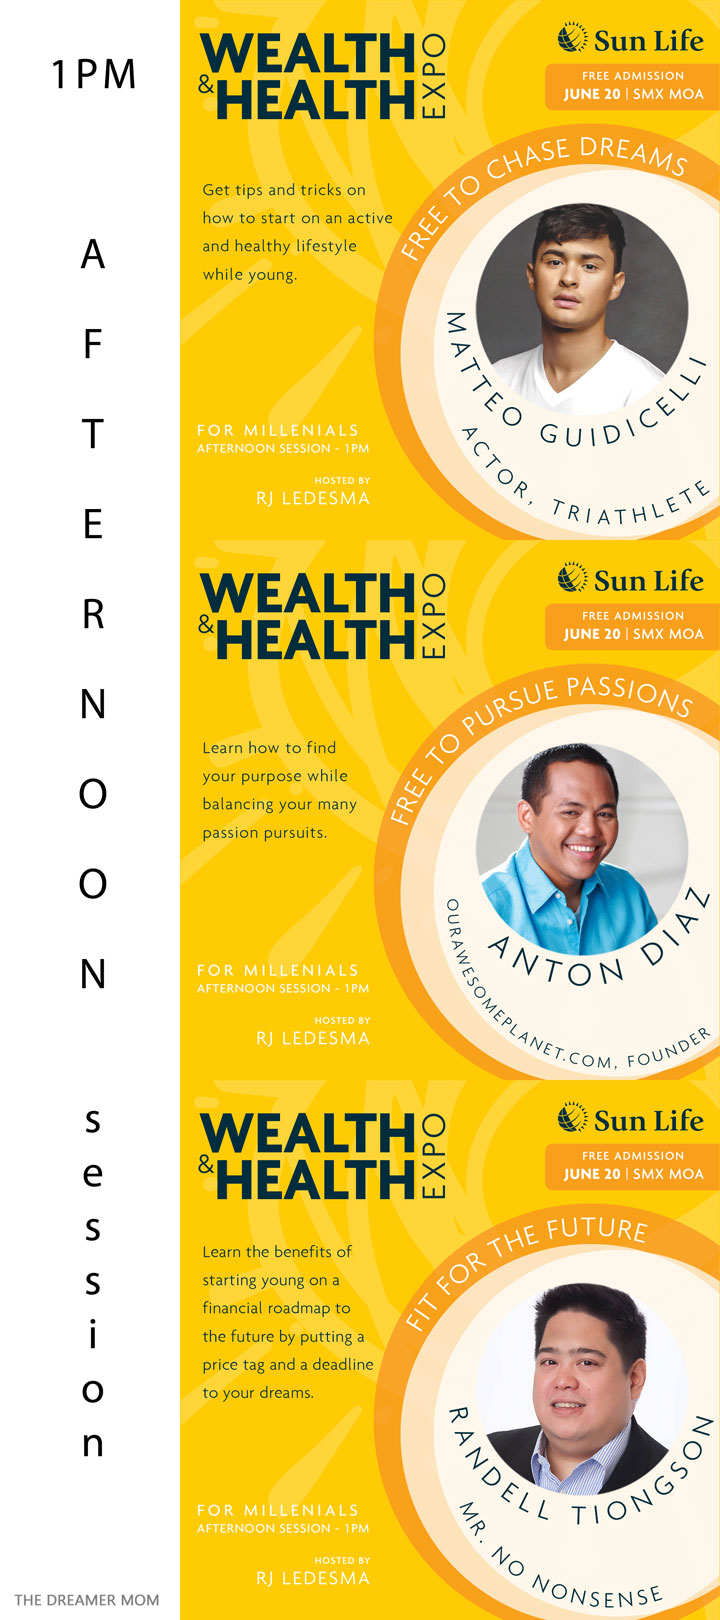 wealth-and-health-expo-by-sunlife-afternoon-session-apm